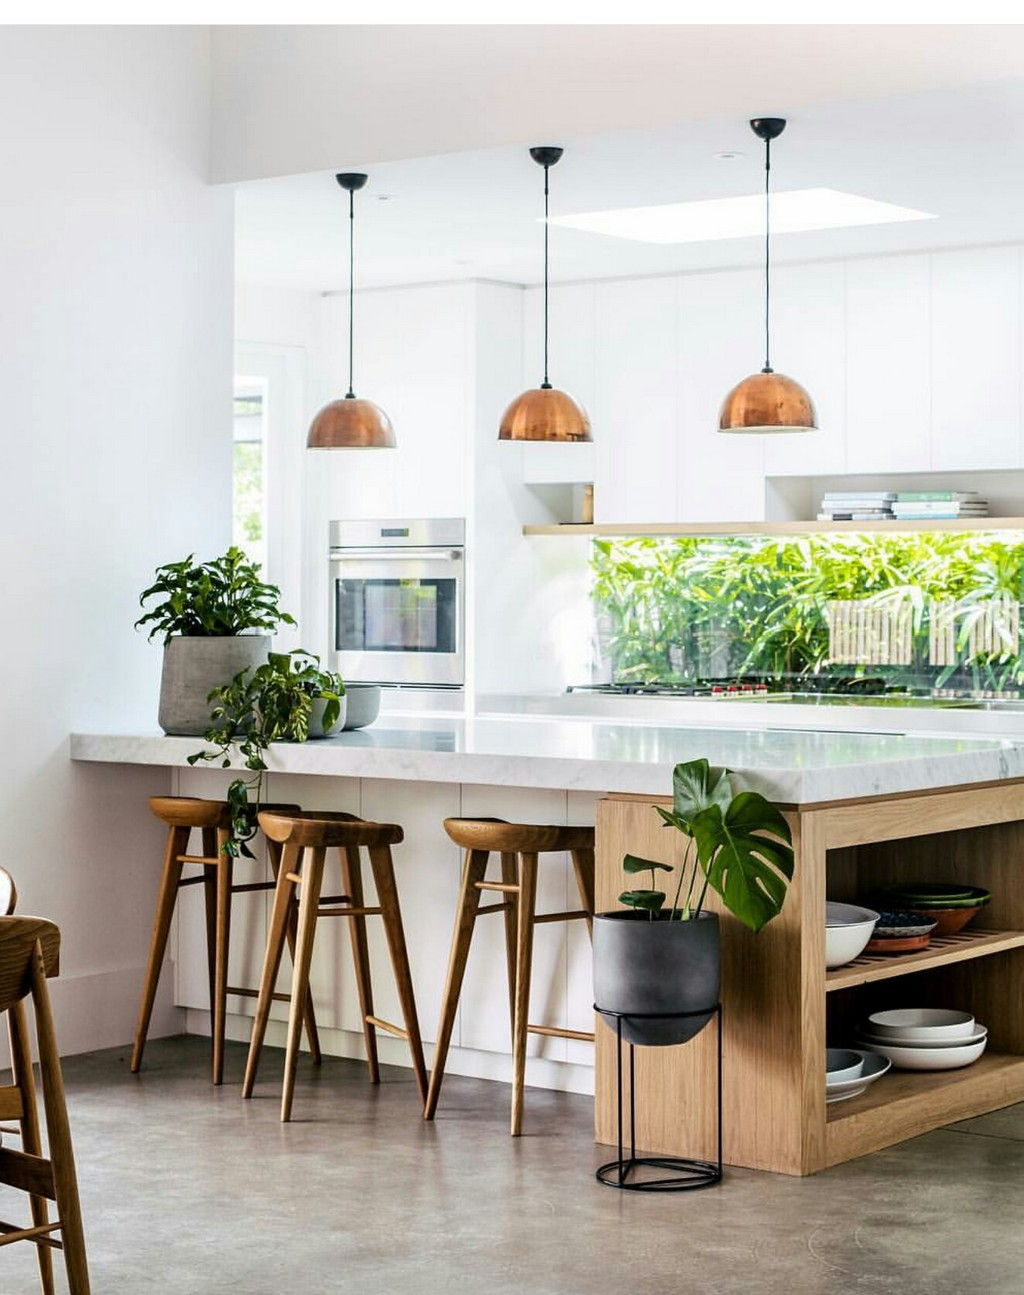 If Your Kitchen Remodel Plan Includes Using Lots Of Plants And Wooden Elements Make Sure To Get A Few Counter Stools That Go With Style